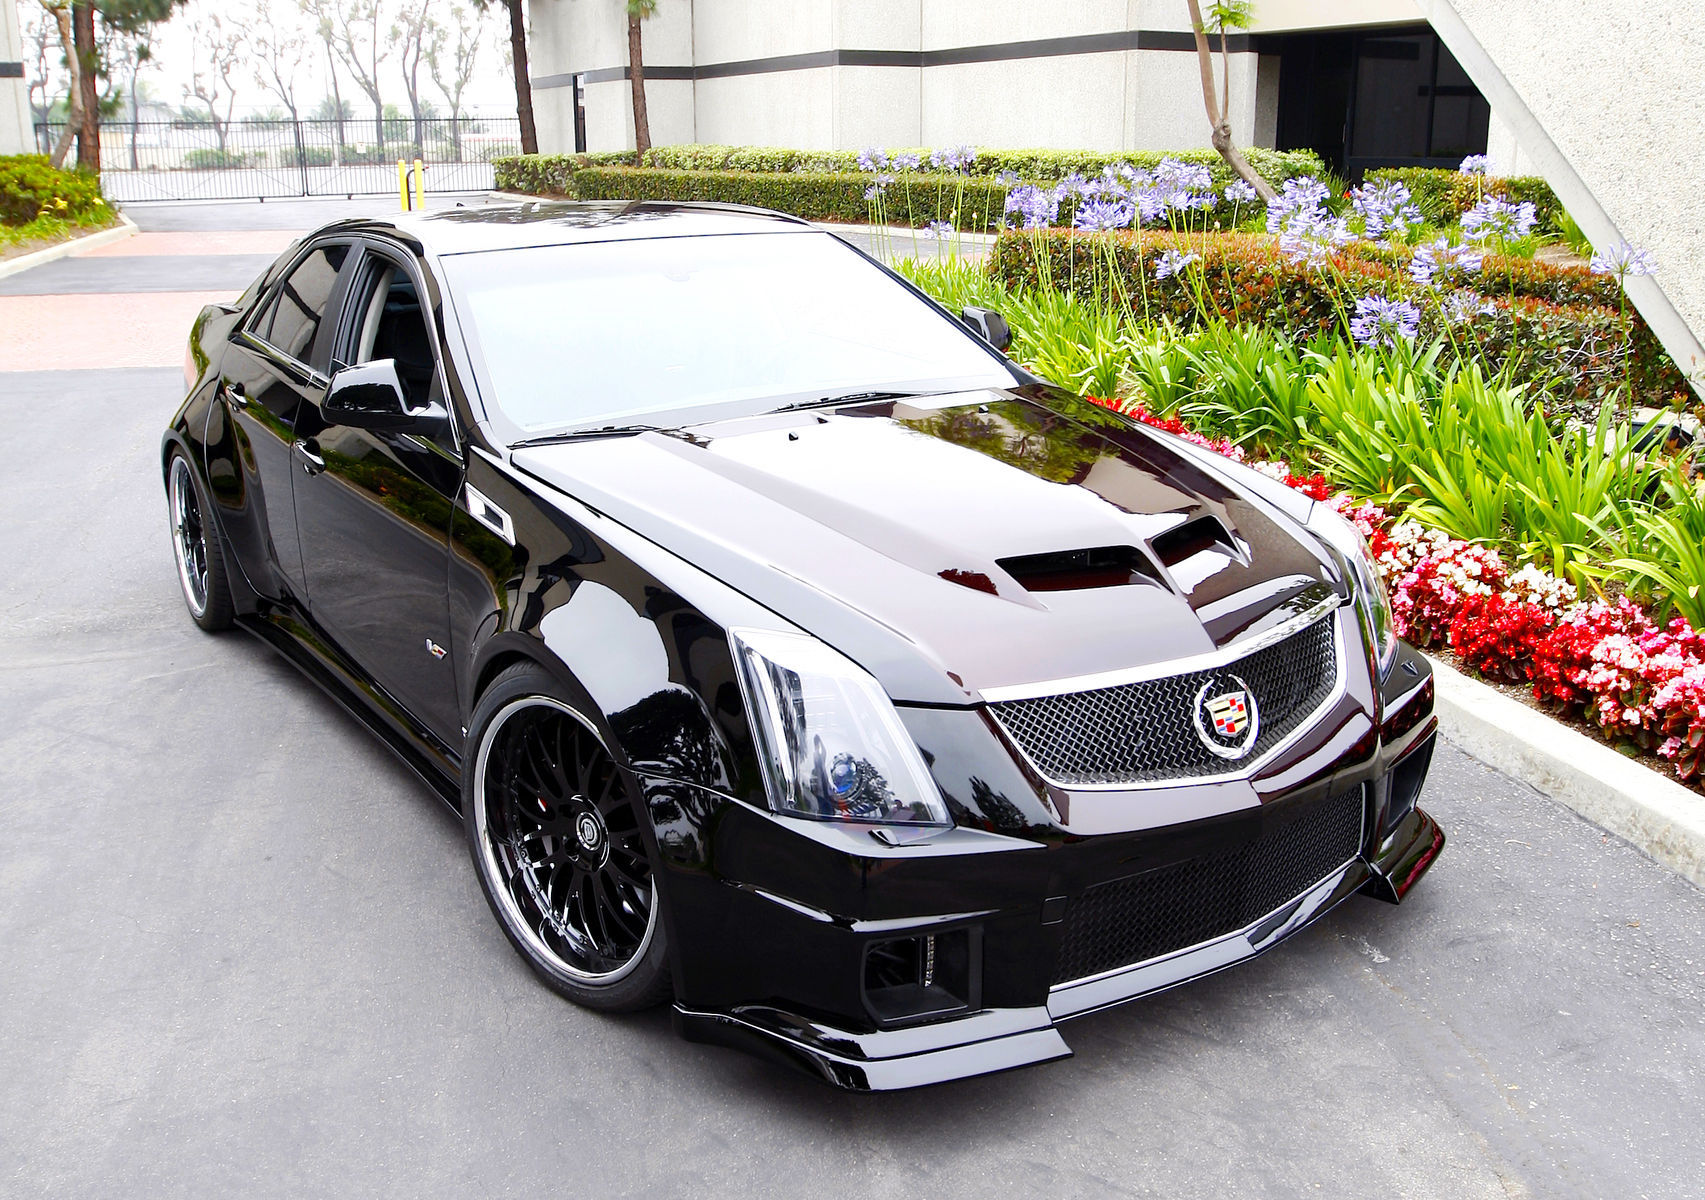 2010 Cadillac CTS-V | Widebody CTS-V Sedan by D3Cadillac on Forgeline MD3P Wheels